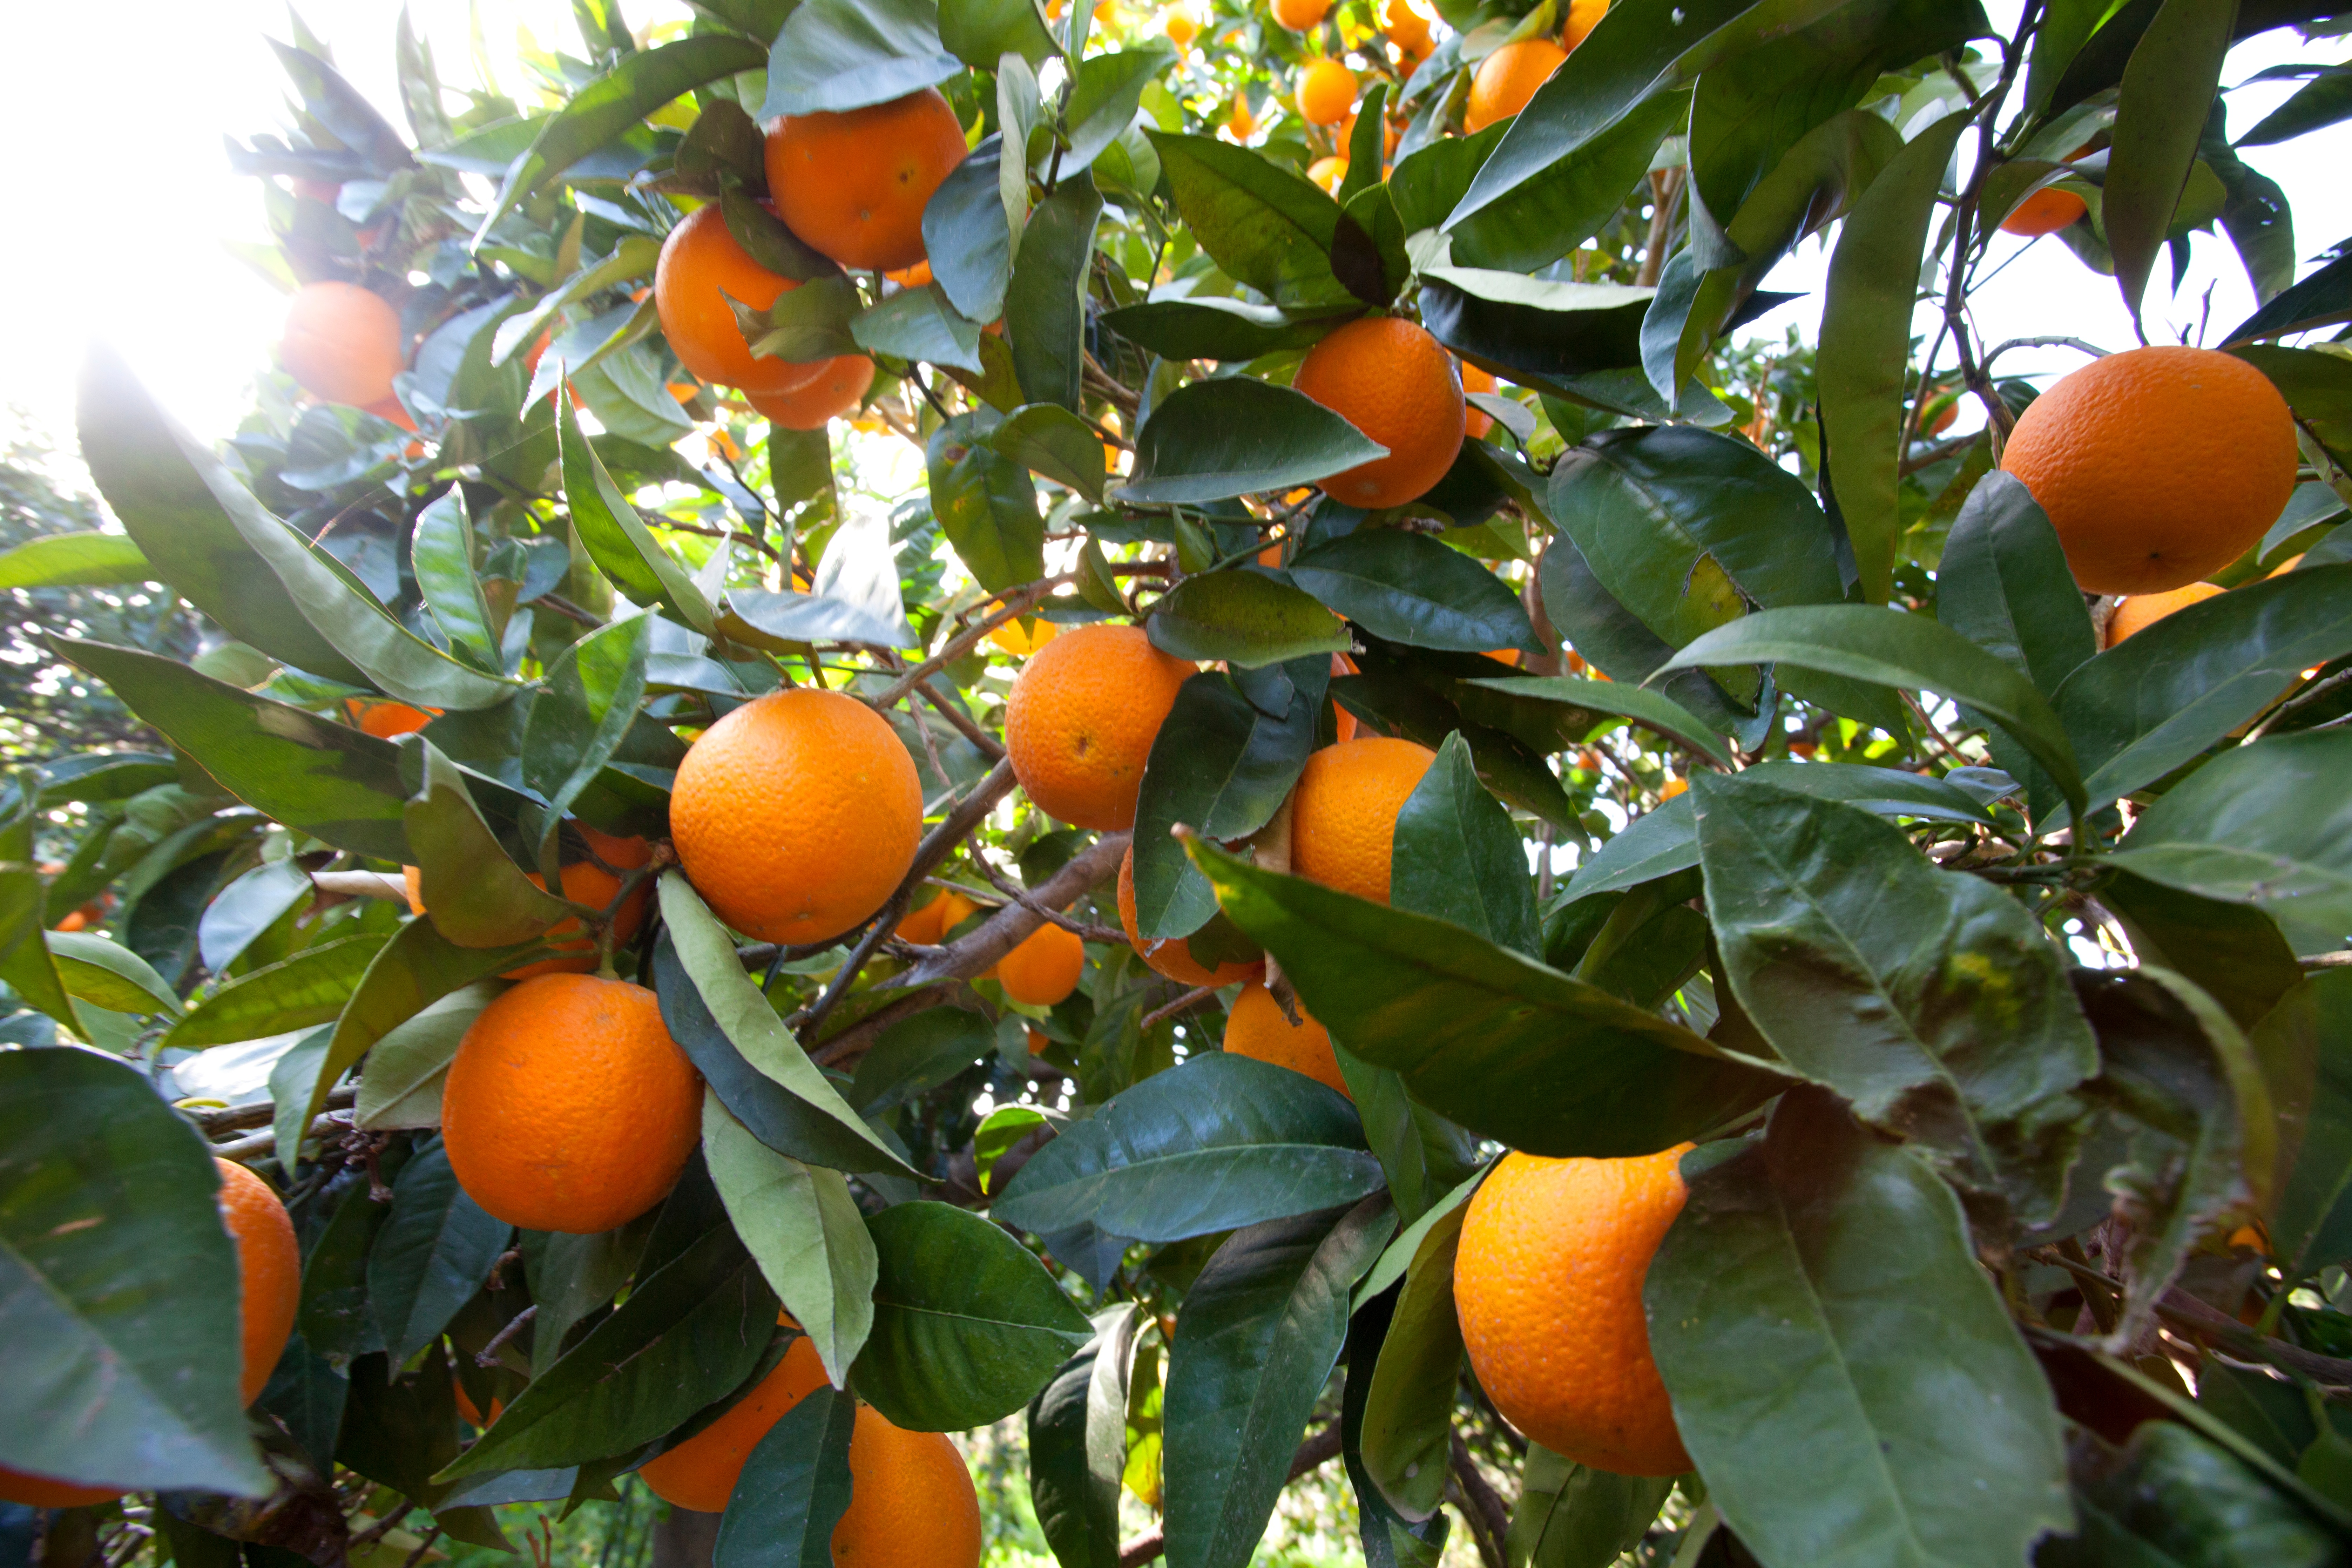 Photo taken by Alan Brown, CSO/Owner, at our citrus grower's grove in Italy